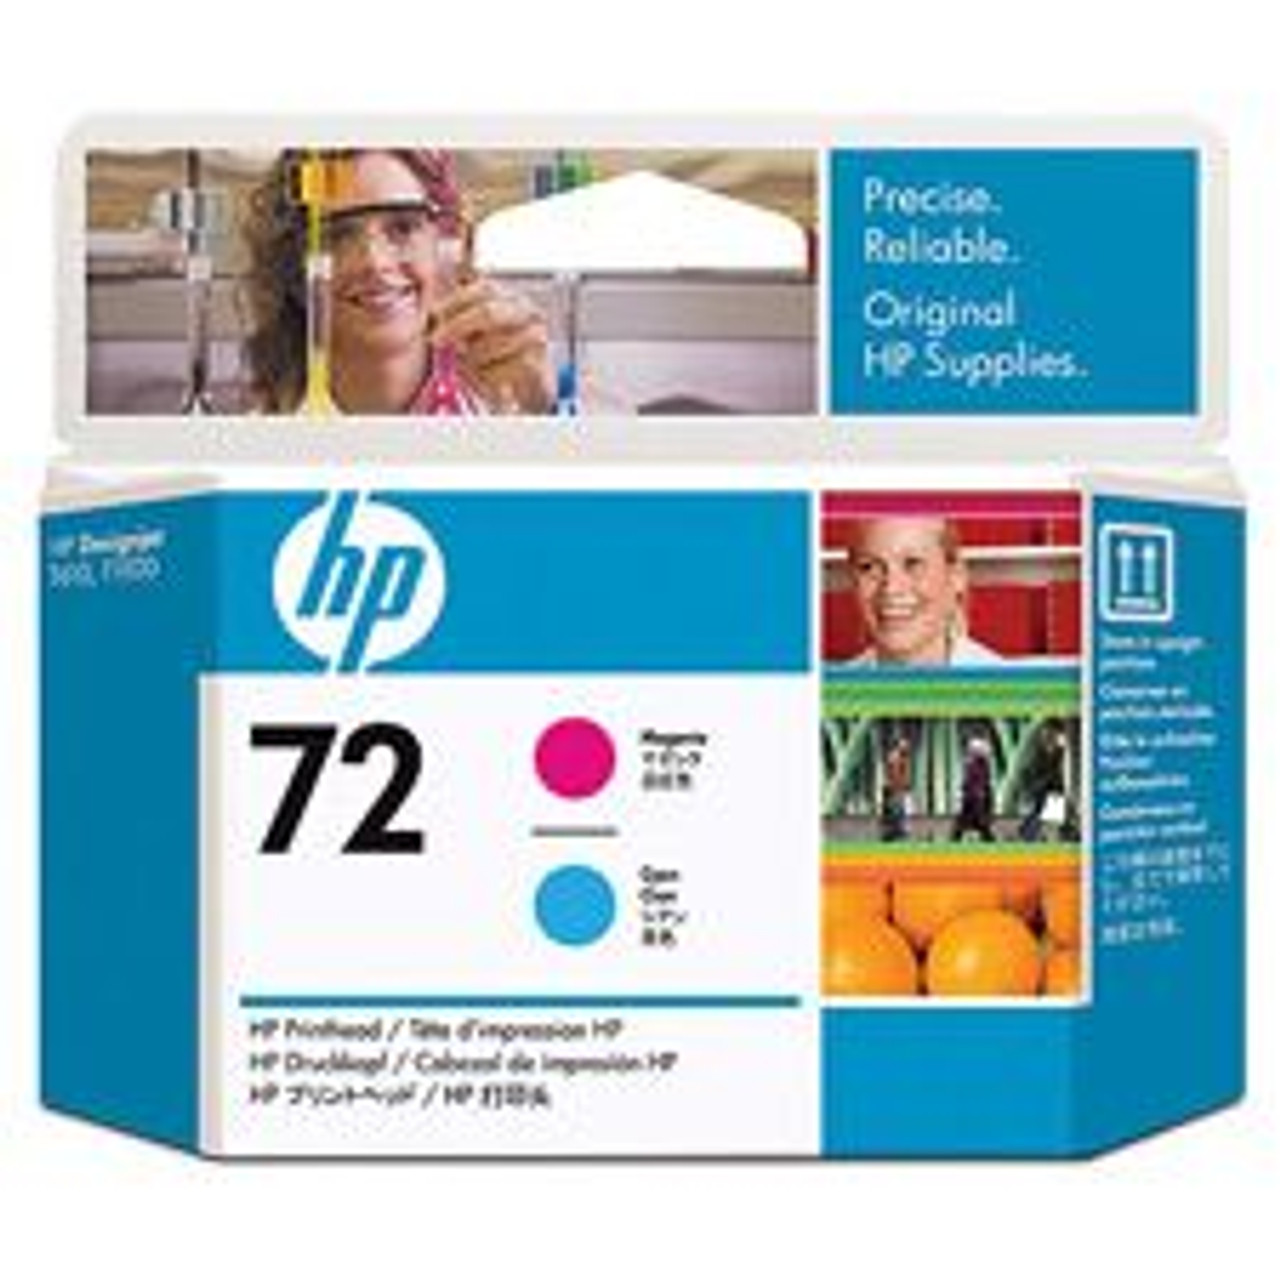 Image for HP 72 Magenta and Cyan Printhead (C9383A) CX Computer Superstore